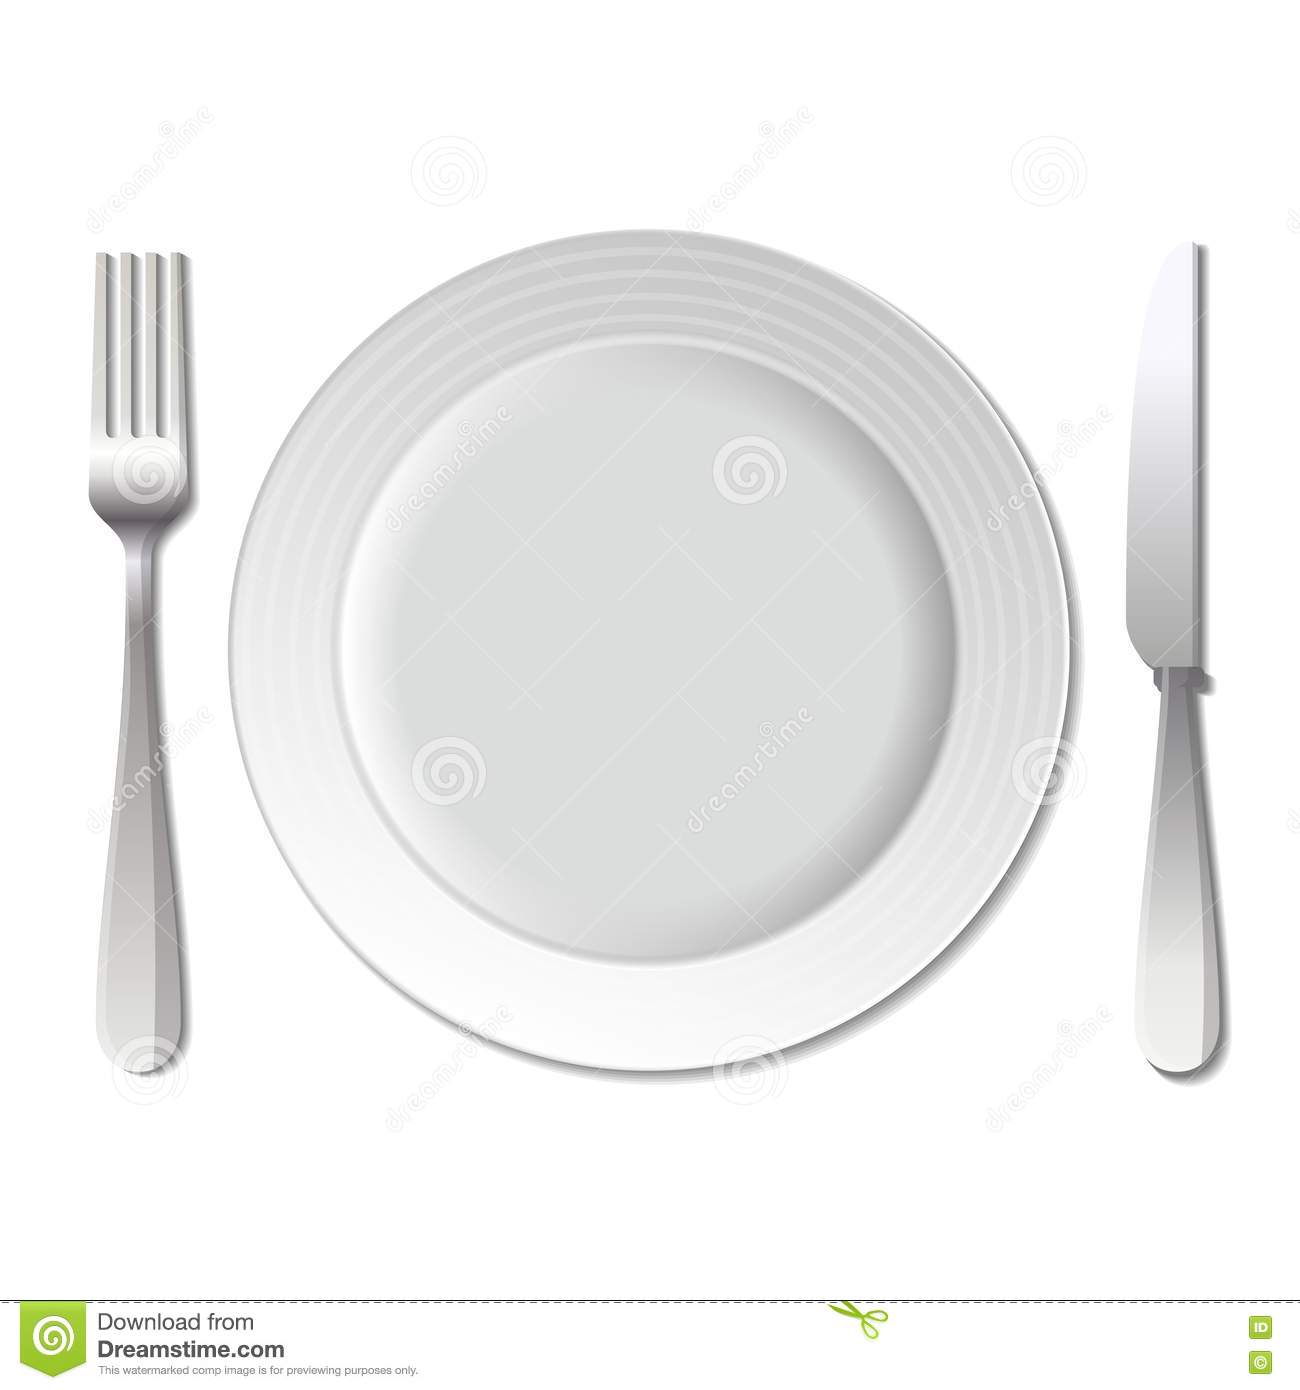 Dinner Plate Knife And Fork  Vector  Stock Image   Image  38717351